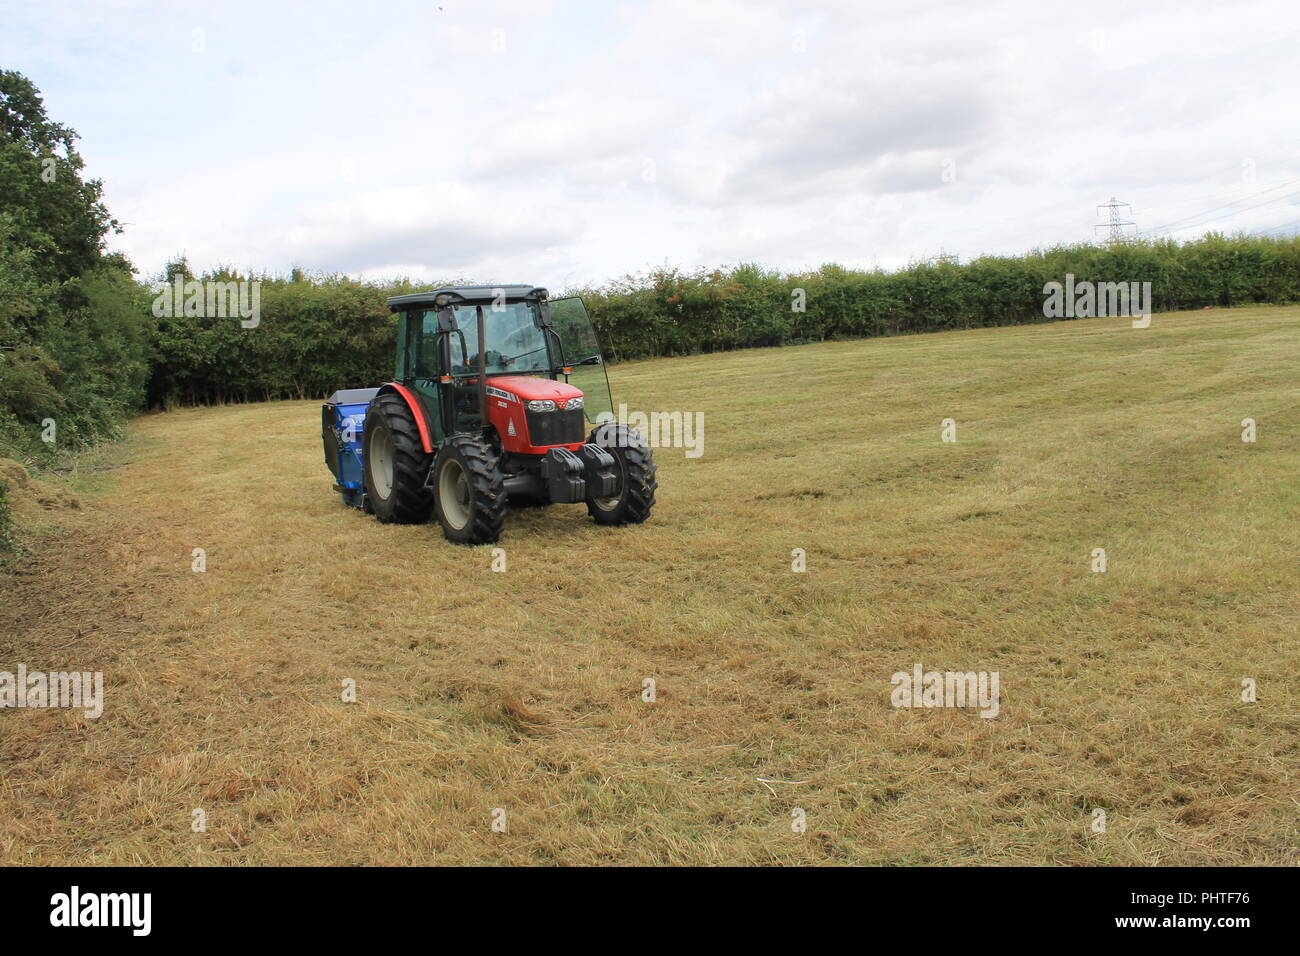 Flail Mower Stock Photos & Flail Mower Stock Images - Alamy